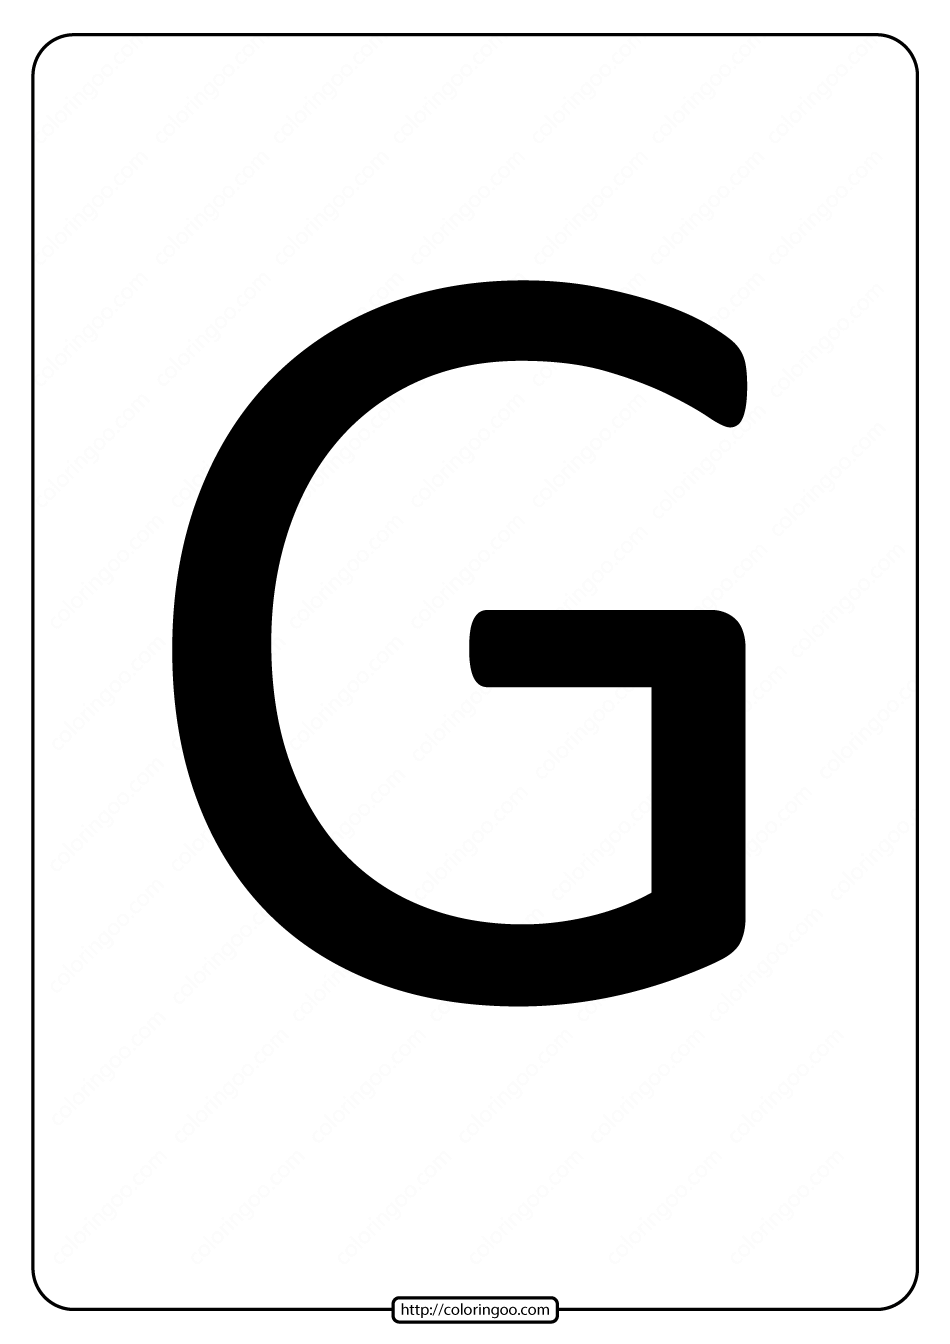 Printable A4 Size Uppercase Letters G Worksheet